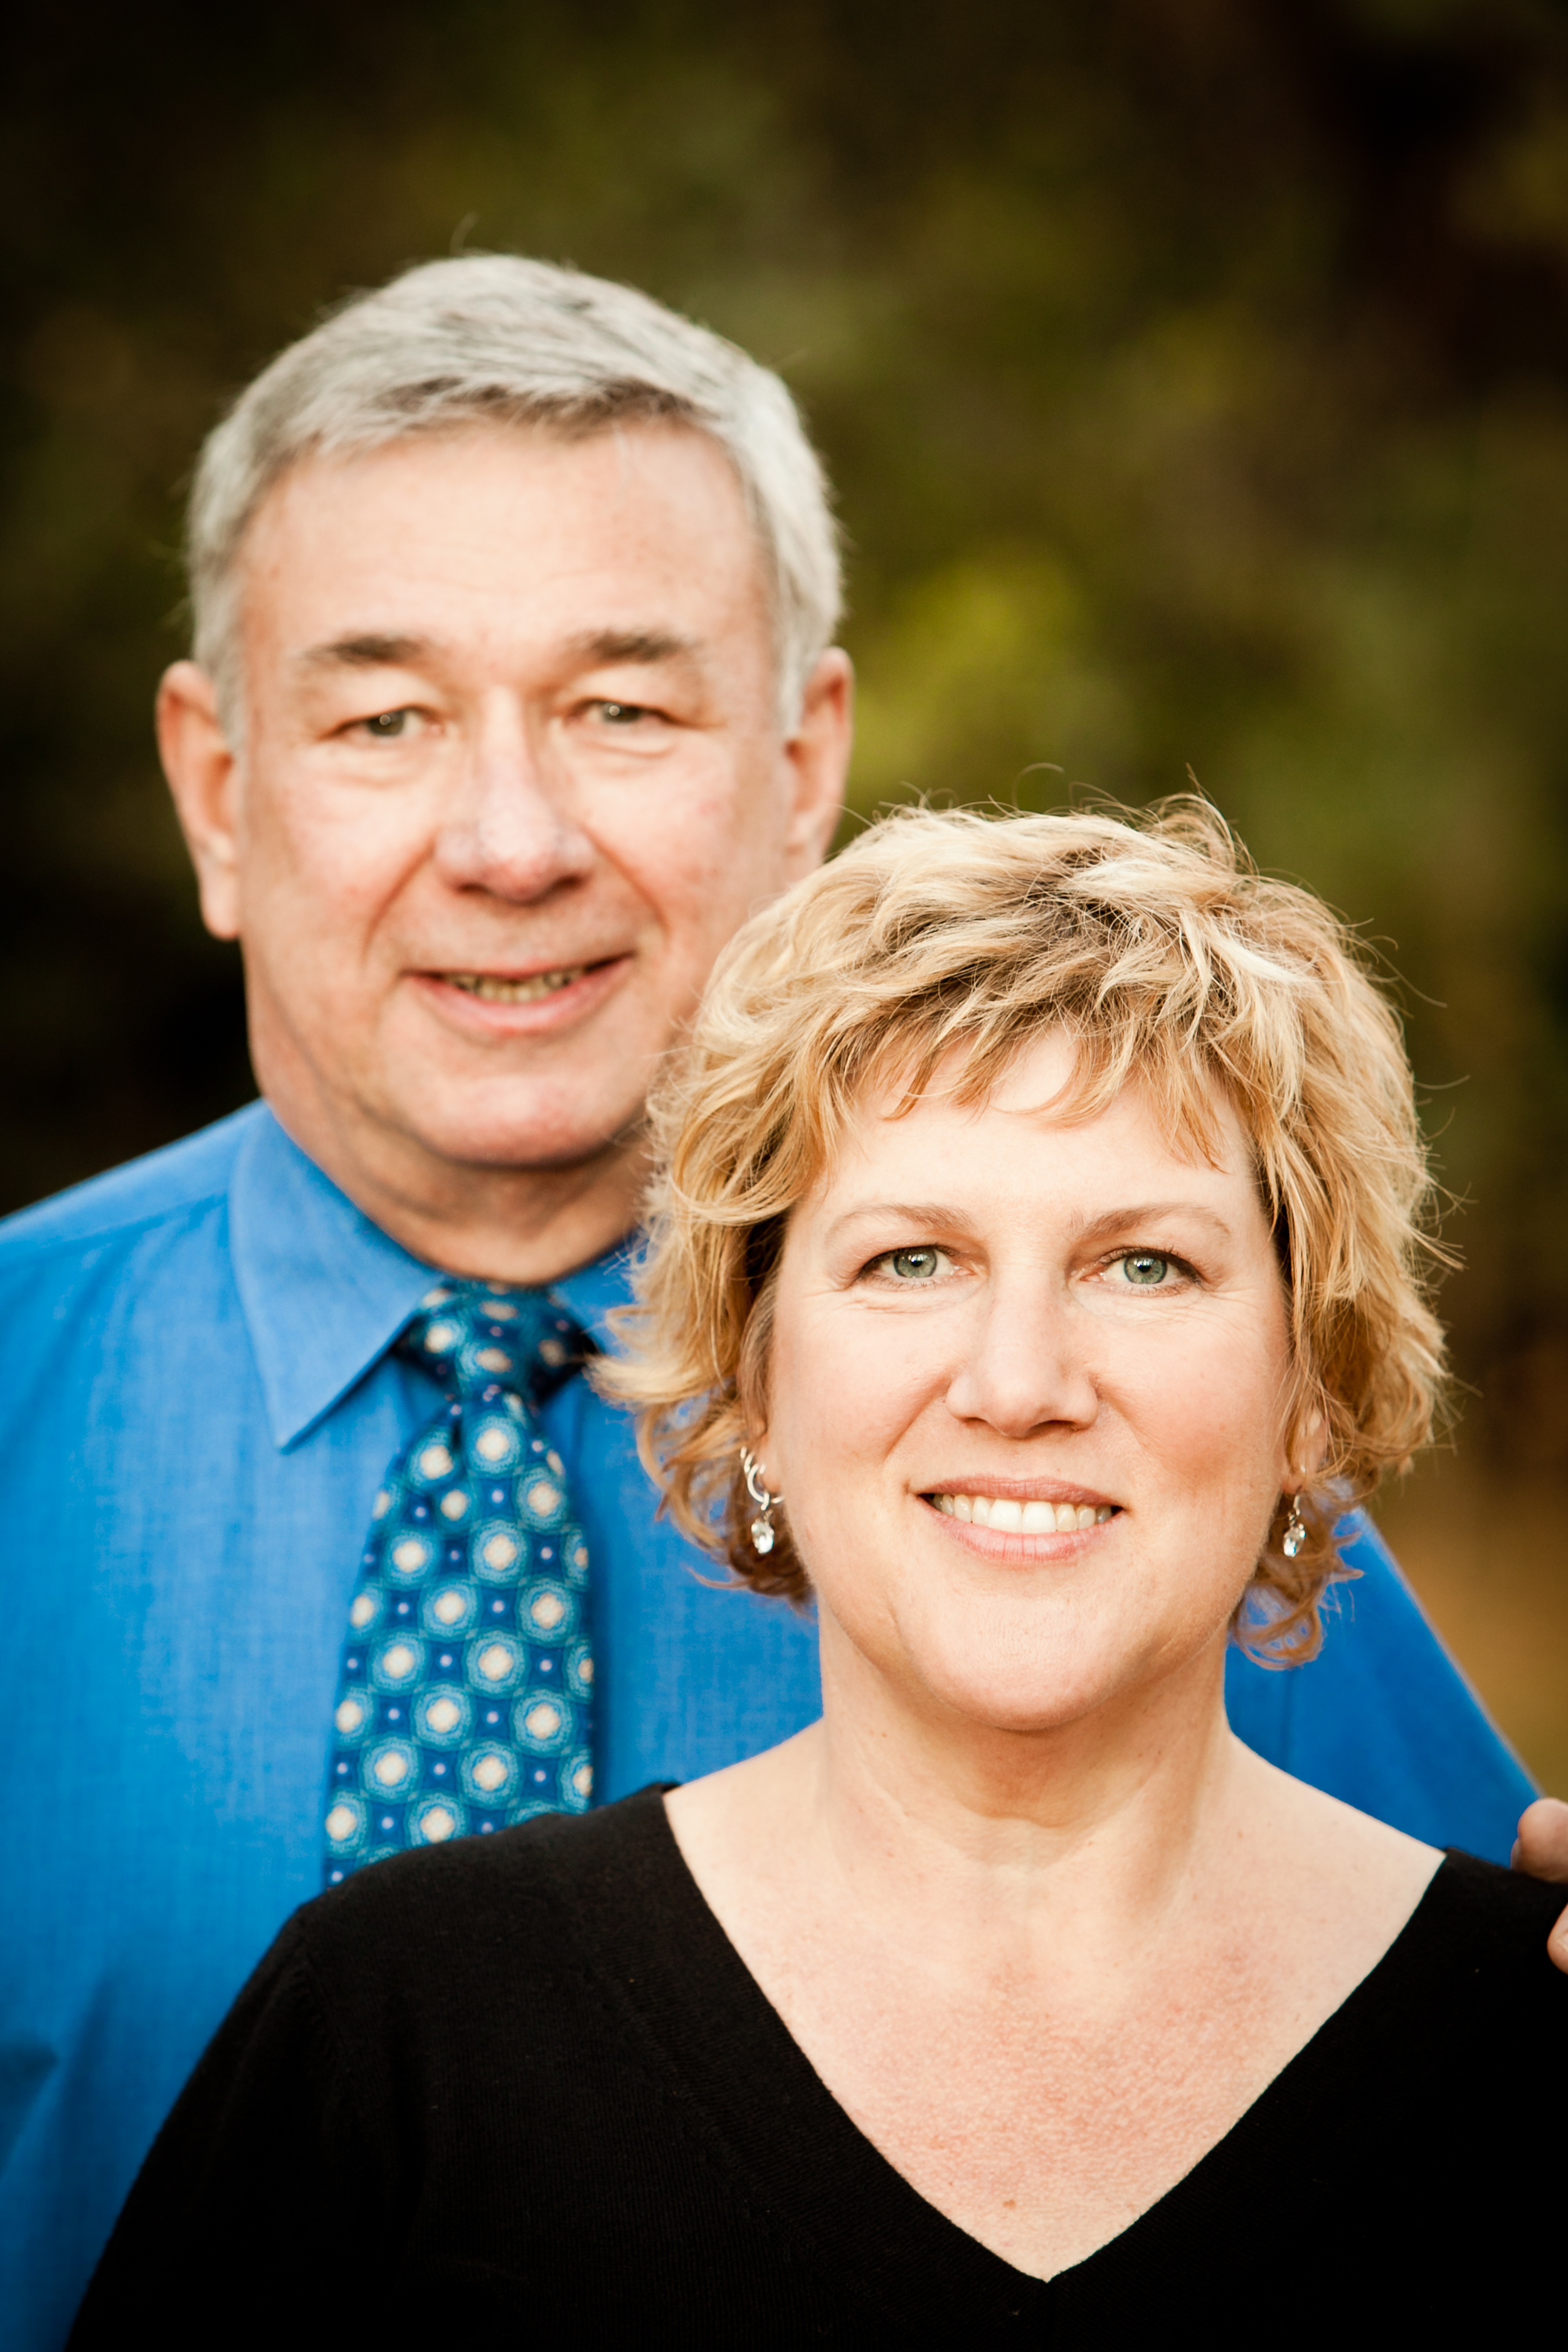 Nancy and Biff Barnes, owners, answer all emails and calls.